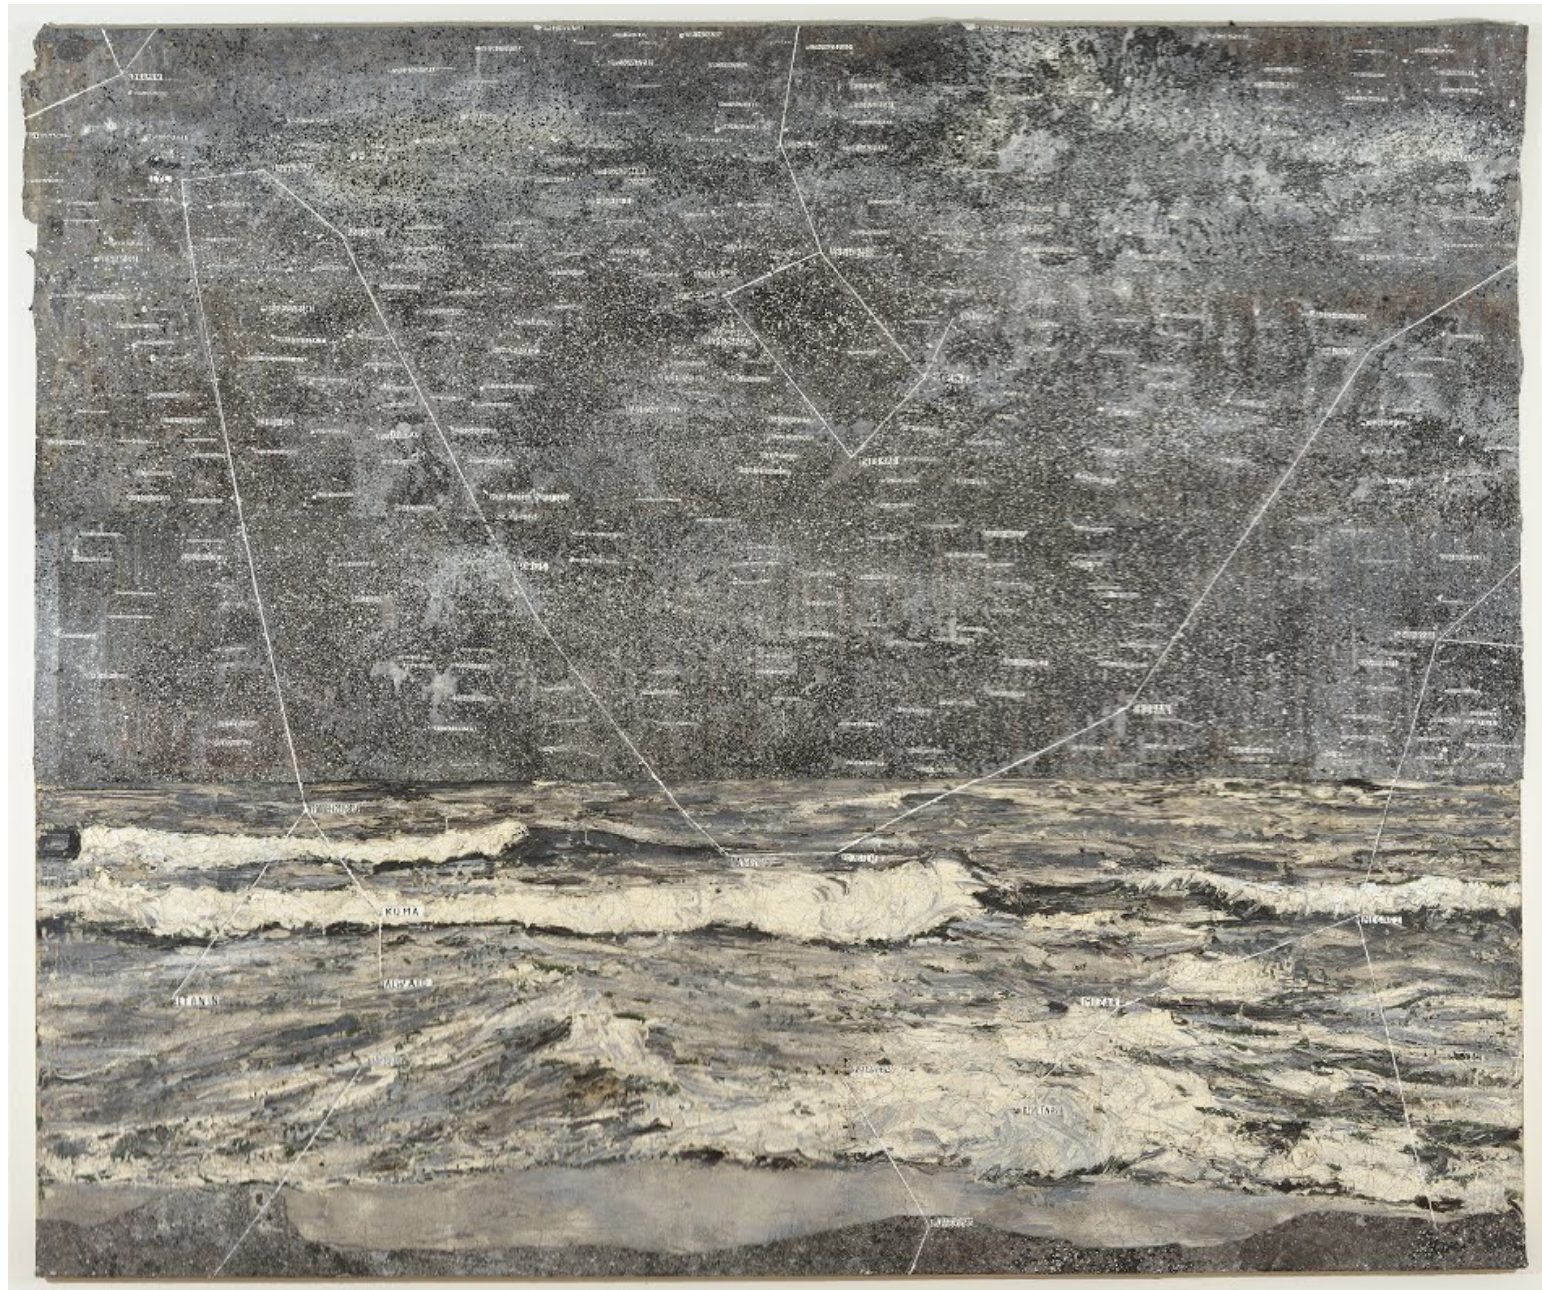 Dragon (Drache) by Anselm Kiefer